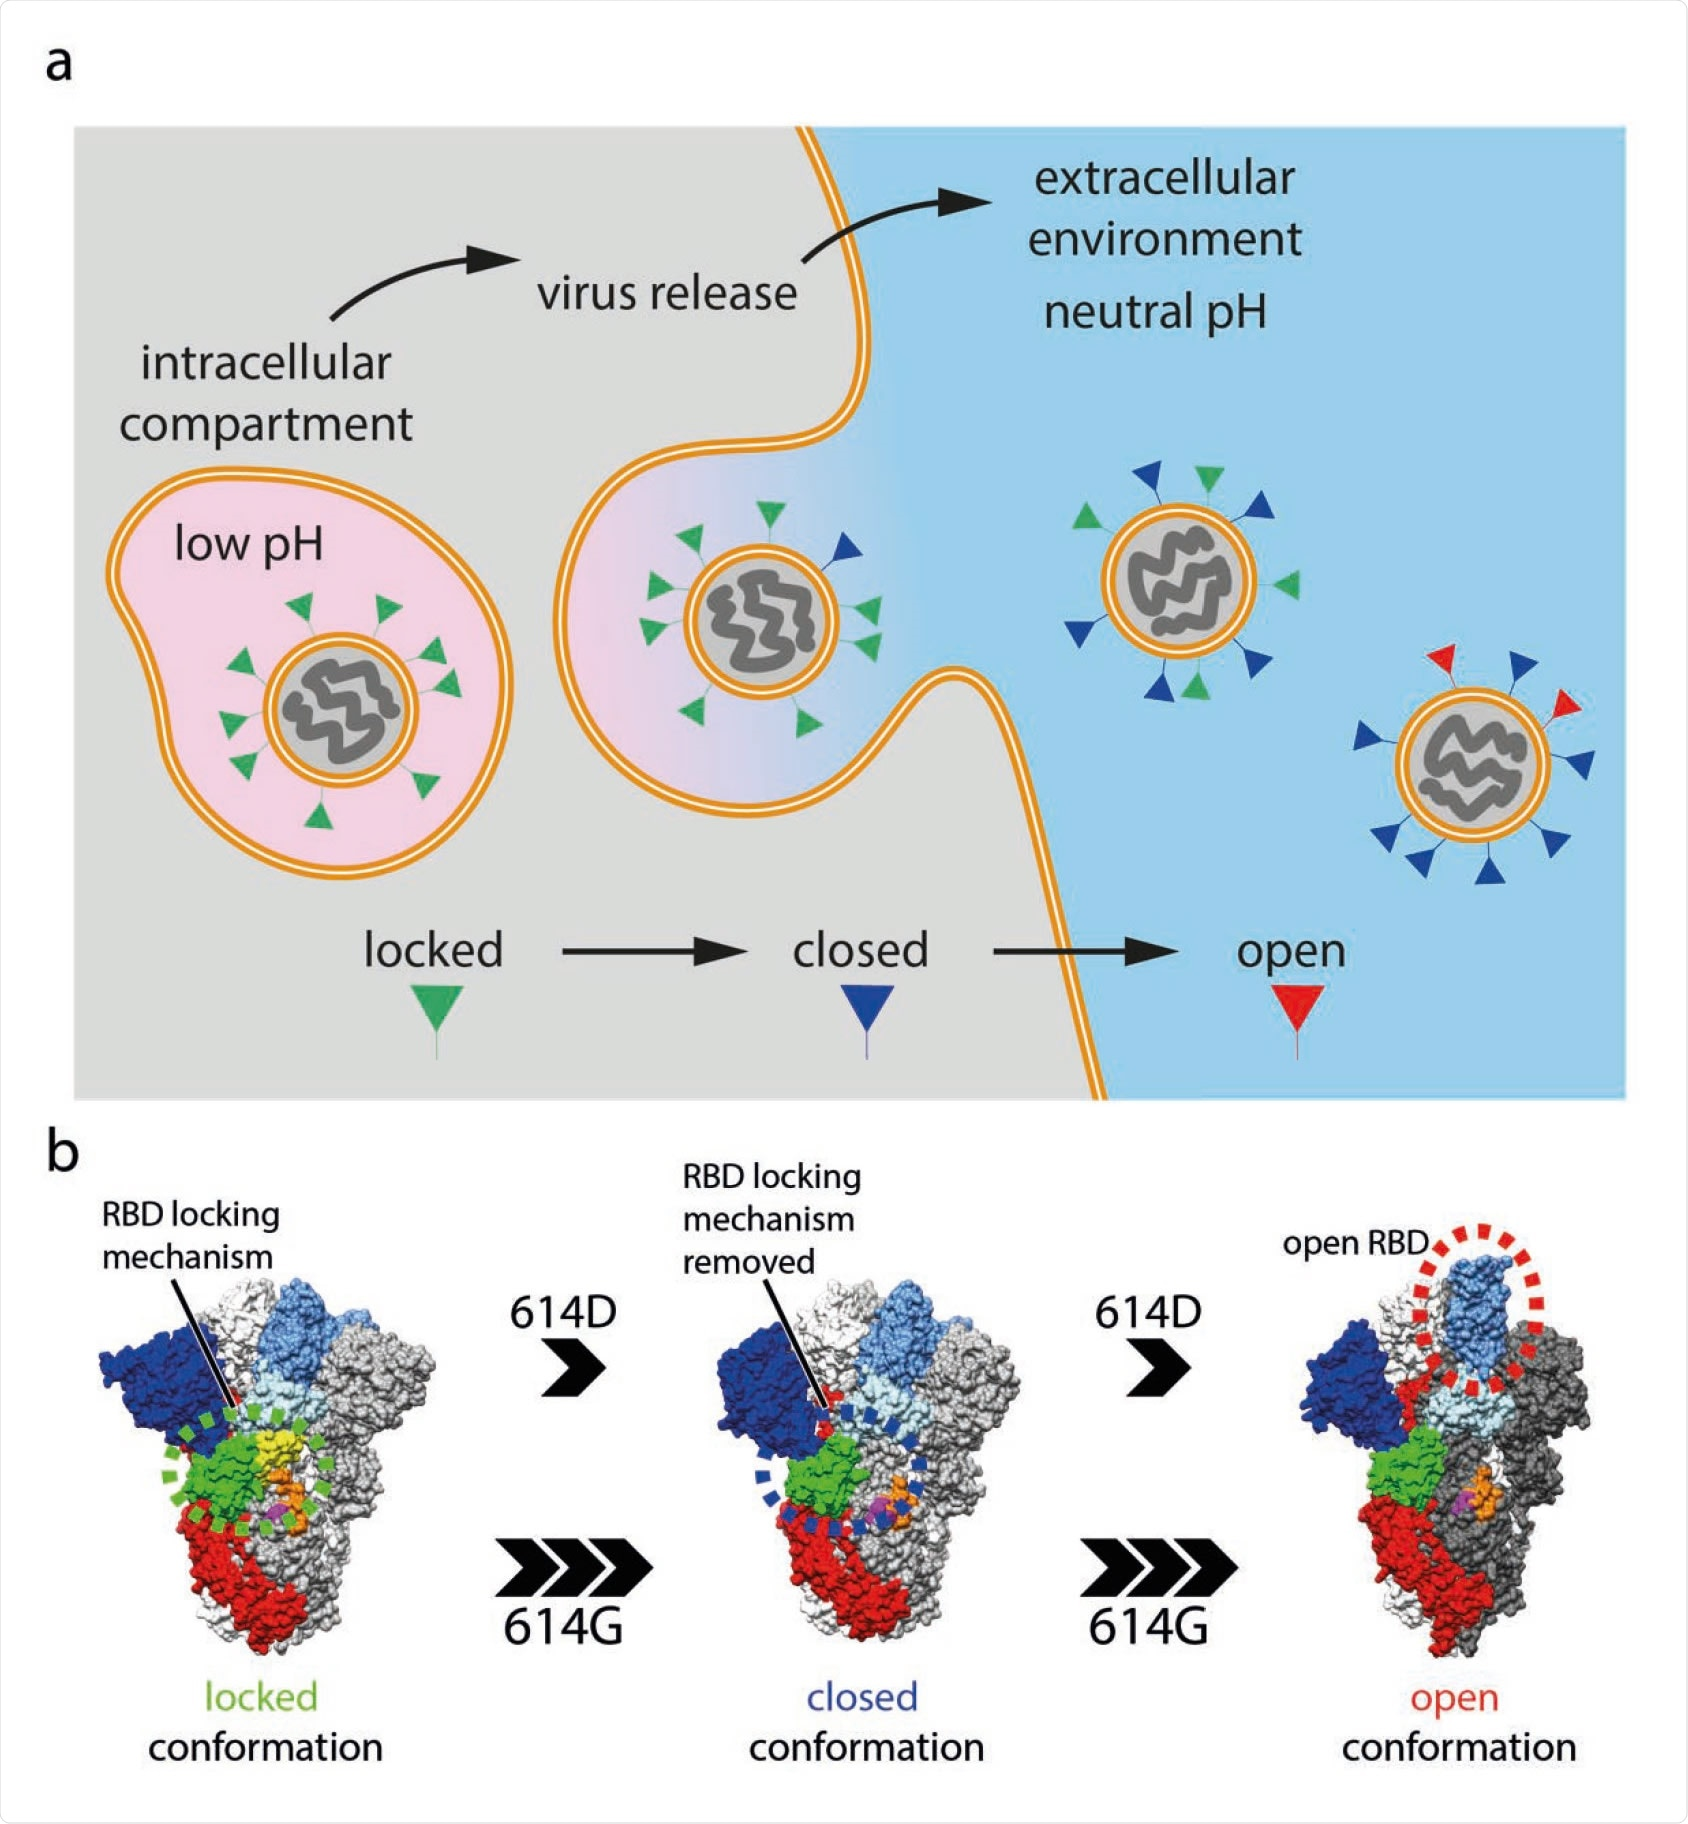 SARS-CoV-2 virus particle release and the accompanied structural transitions of surface spike protein. a, schematic diagram illustrating the release of nascent SARS-CoV-2 virus particles from the cell. Labelled boxes indicate the predicted conformational states of spike proteins as the virus travel through the acidic intracellular compartment before it was released into the neutral extracellular environment. b, the three prefusion conformational states observed for the SARS-CoV-2 spike protein and factors that influence the structural transitions between the conformational states.